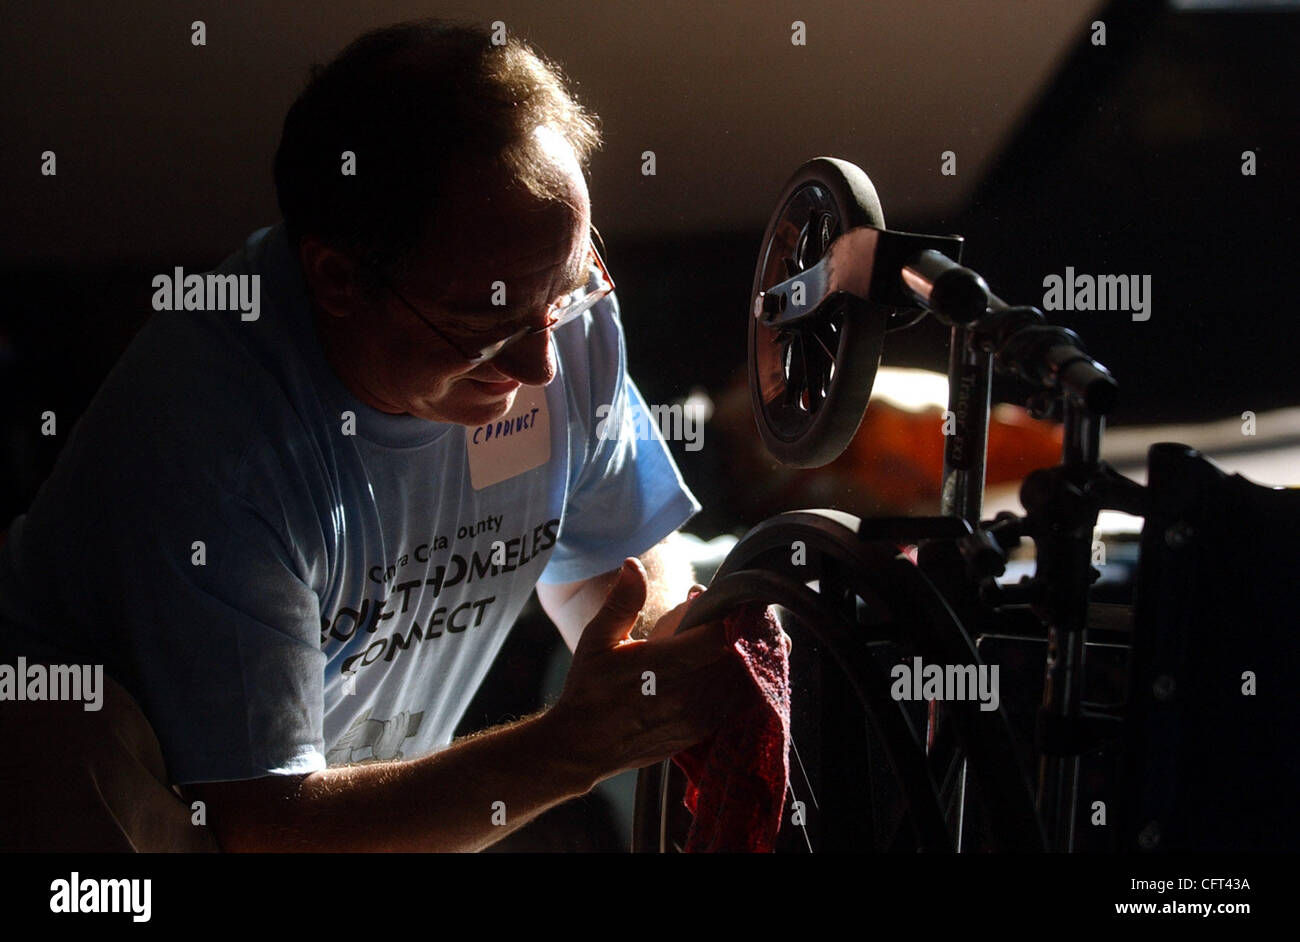 Paul Cardinet, a public health nurse, knows bikes but is doing repair work on wheelchairs to help Project Homeless - Stock Image